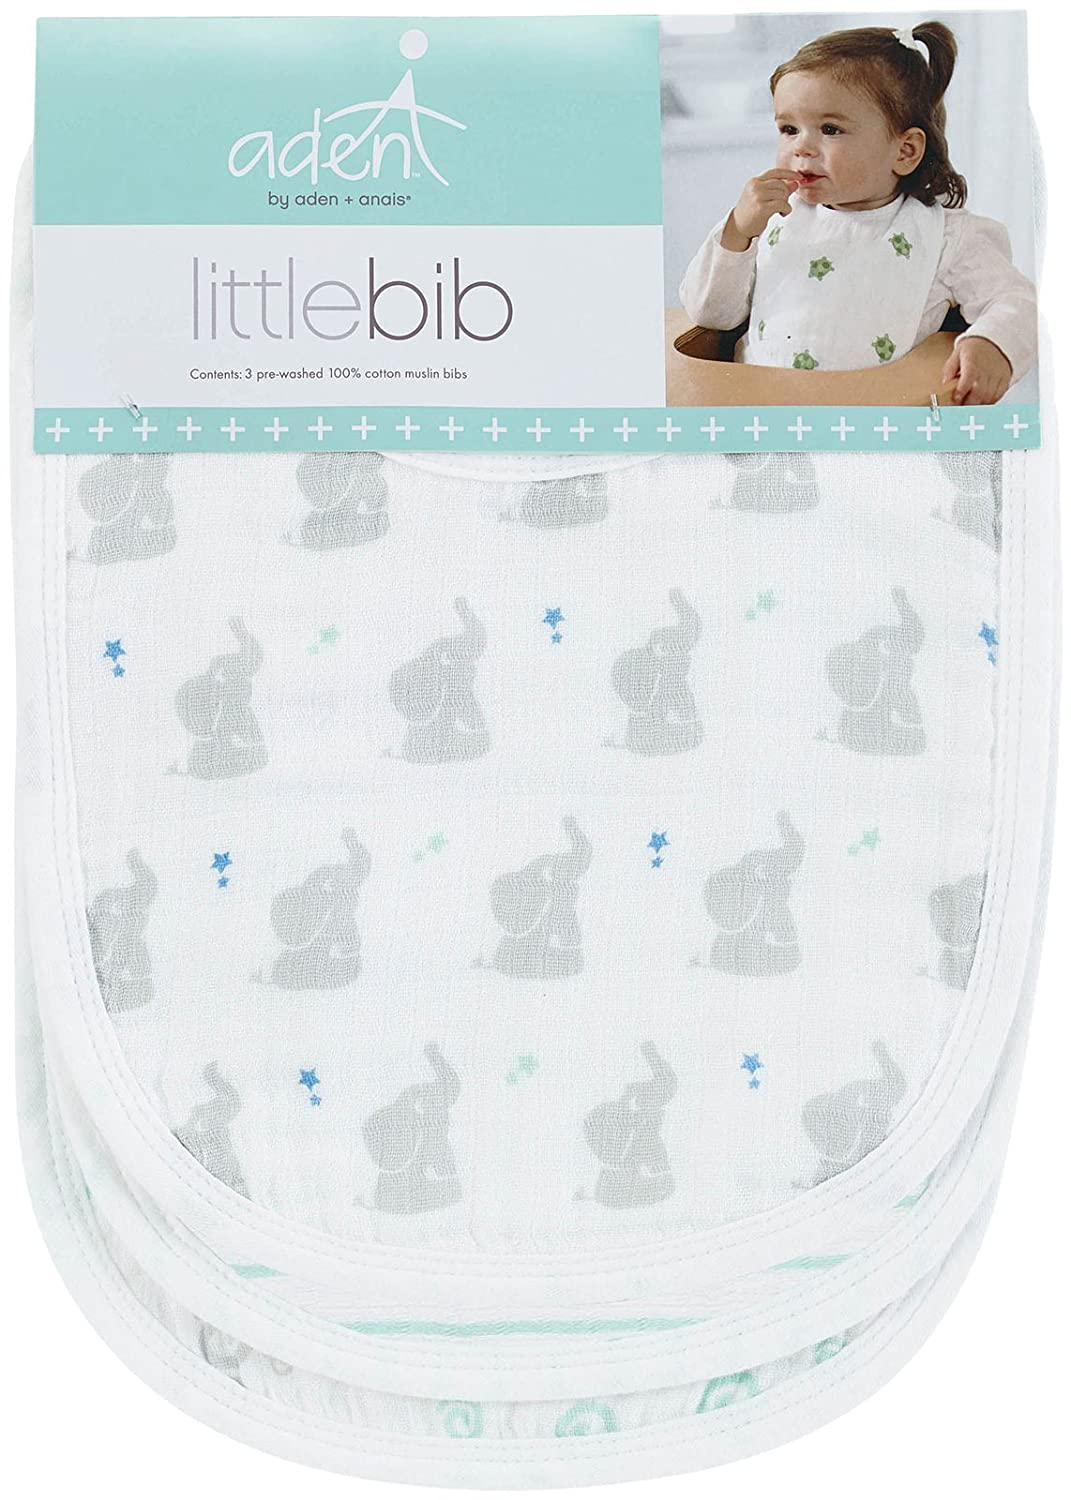 """10039c64 Amazon.com: aden by aden + anais Snap Bib, 100% Cotton Muslin, Soft  Absorbent 3 Layers, Adjustable, 9"""" X 13"""", 3 Pack, Baby Star: Baby"""